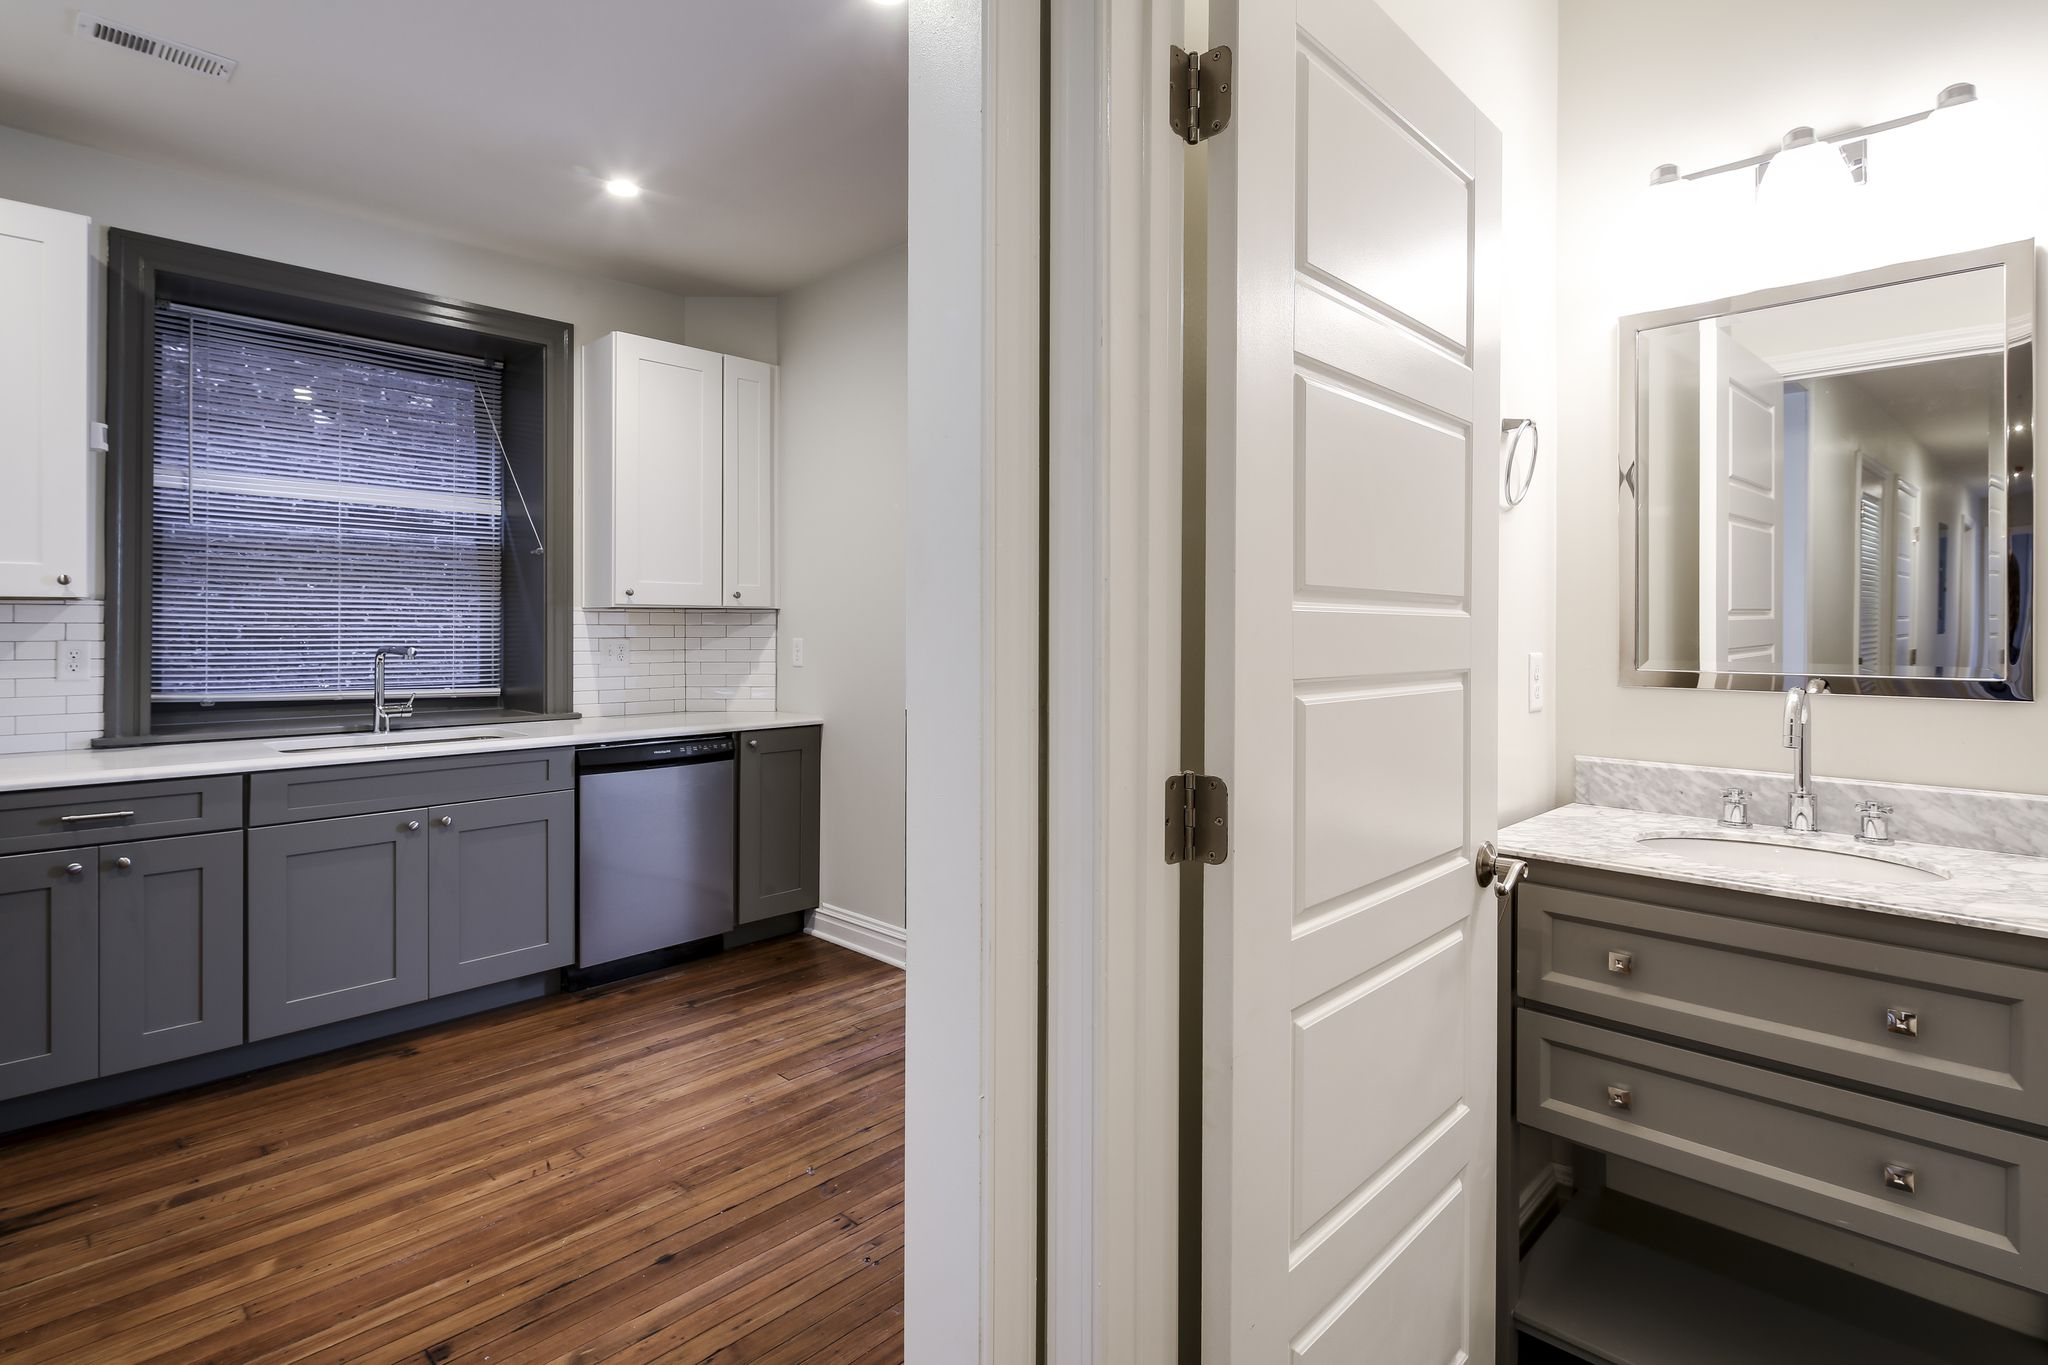 Kitchen And Bath Cabinets By Kbc Direct Over 25 000 Installed Kitchens In The Baltimore And Was Kitchens Direct Kitchen Cabinets In Bathroom Kitchen Cabinets